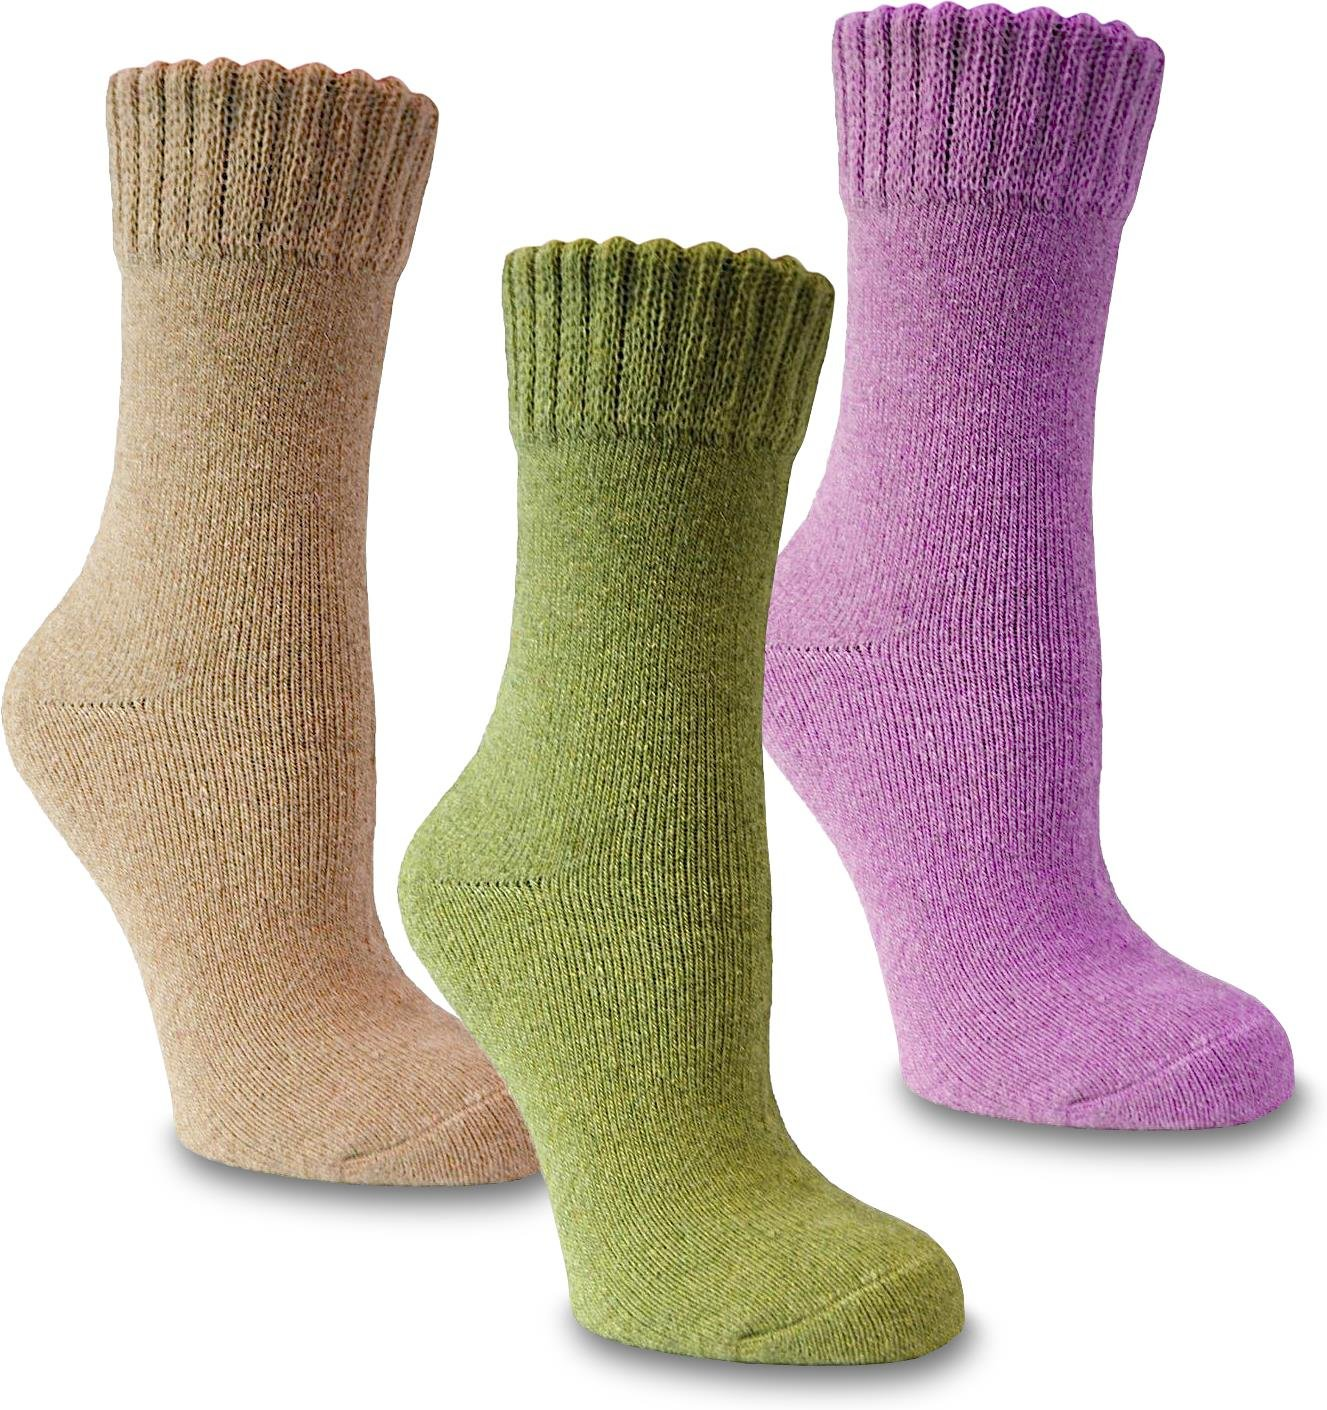 3 Paar Damen Angora Wollsocken - warme Wintersocken